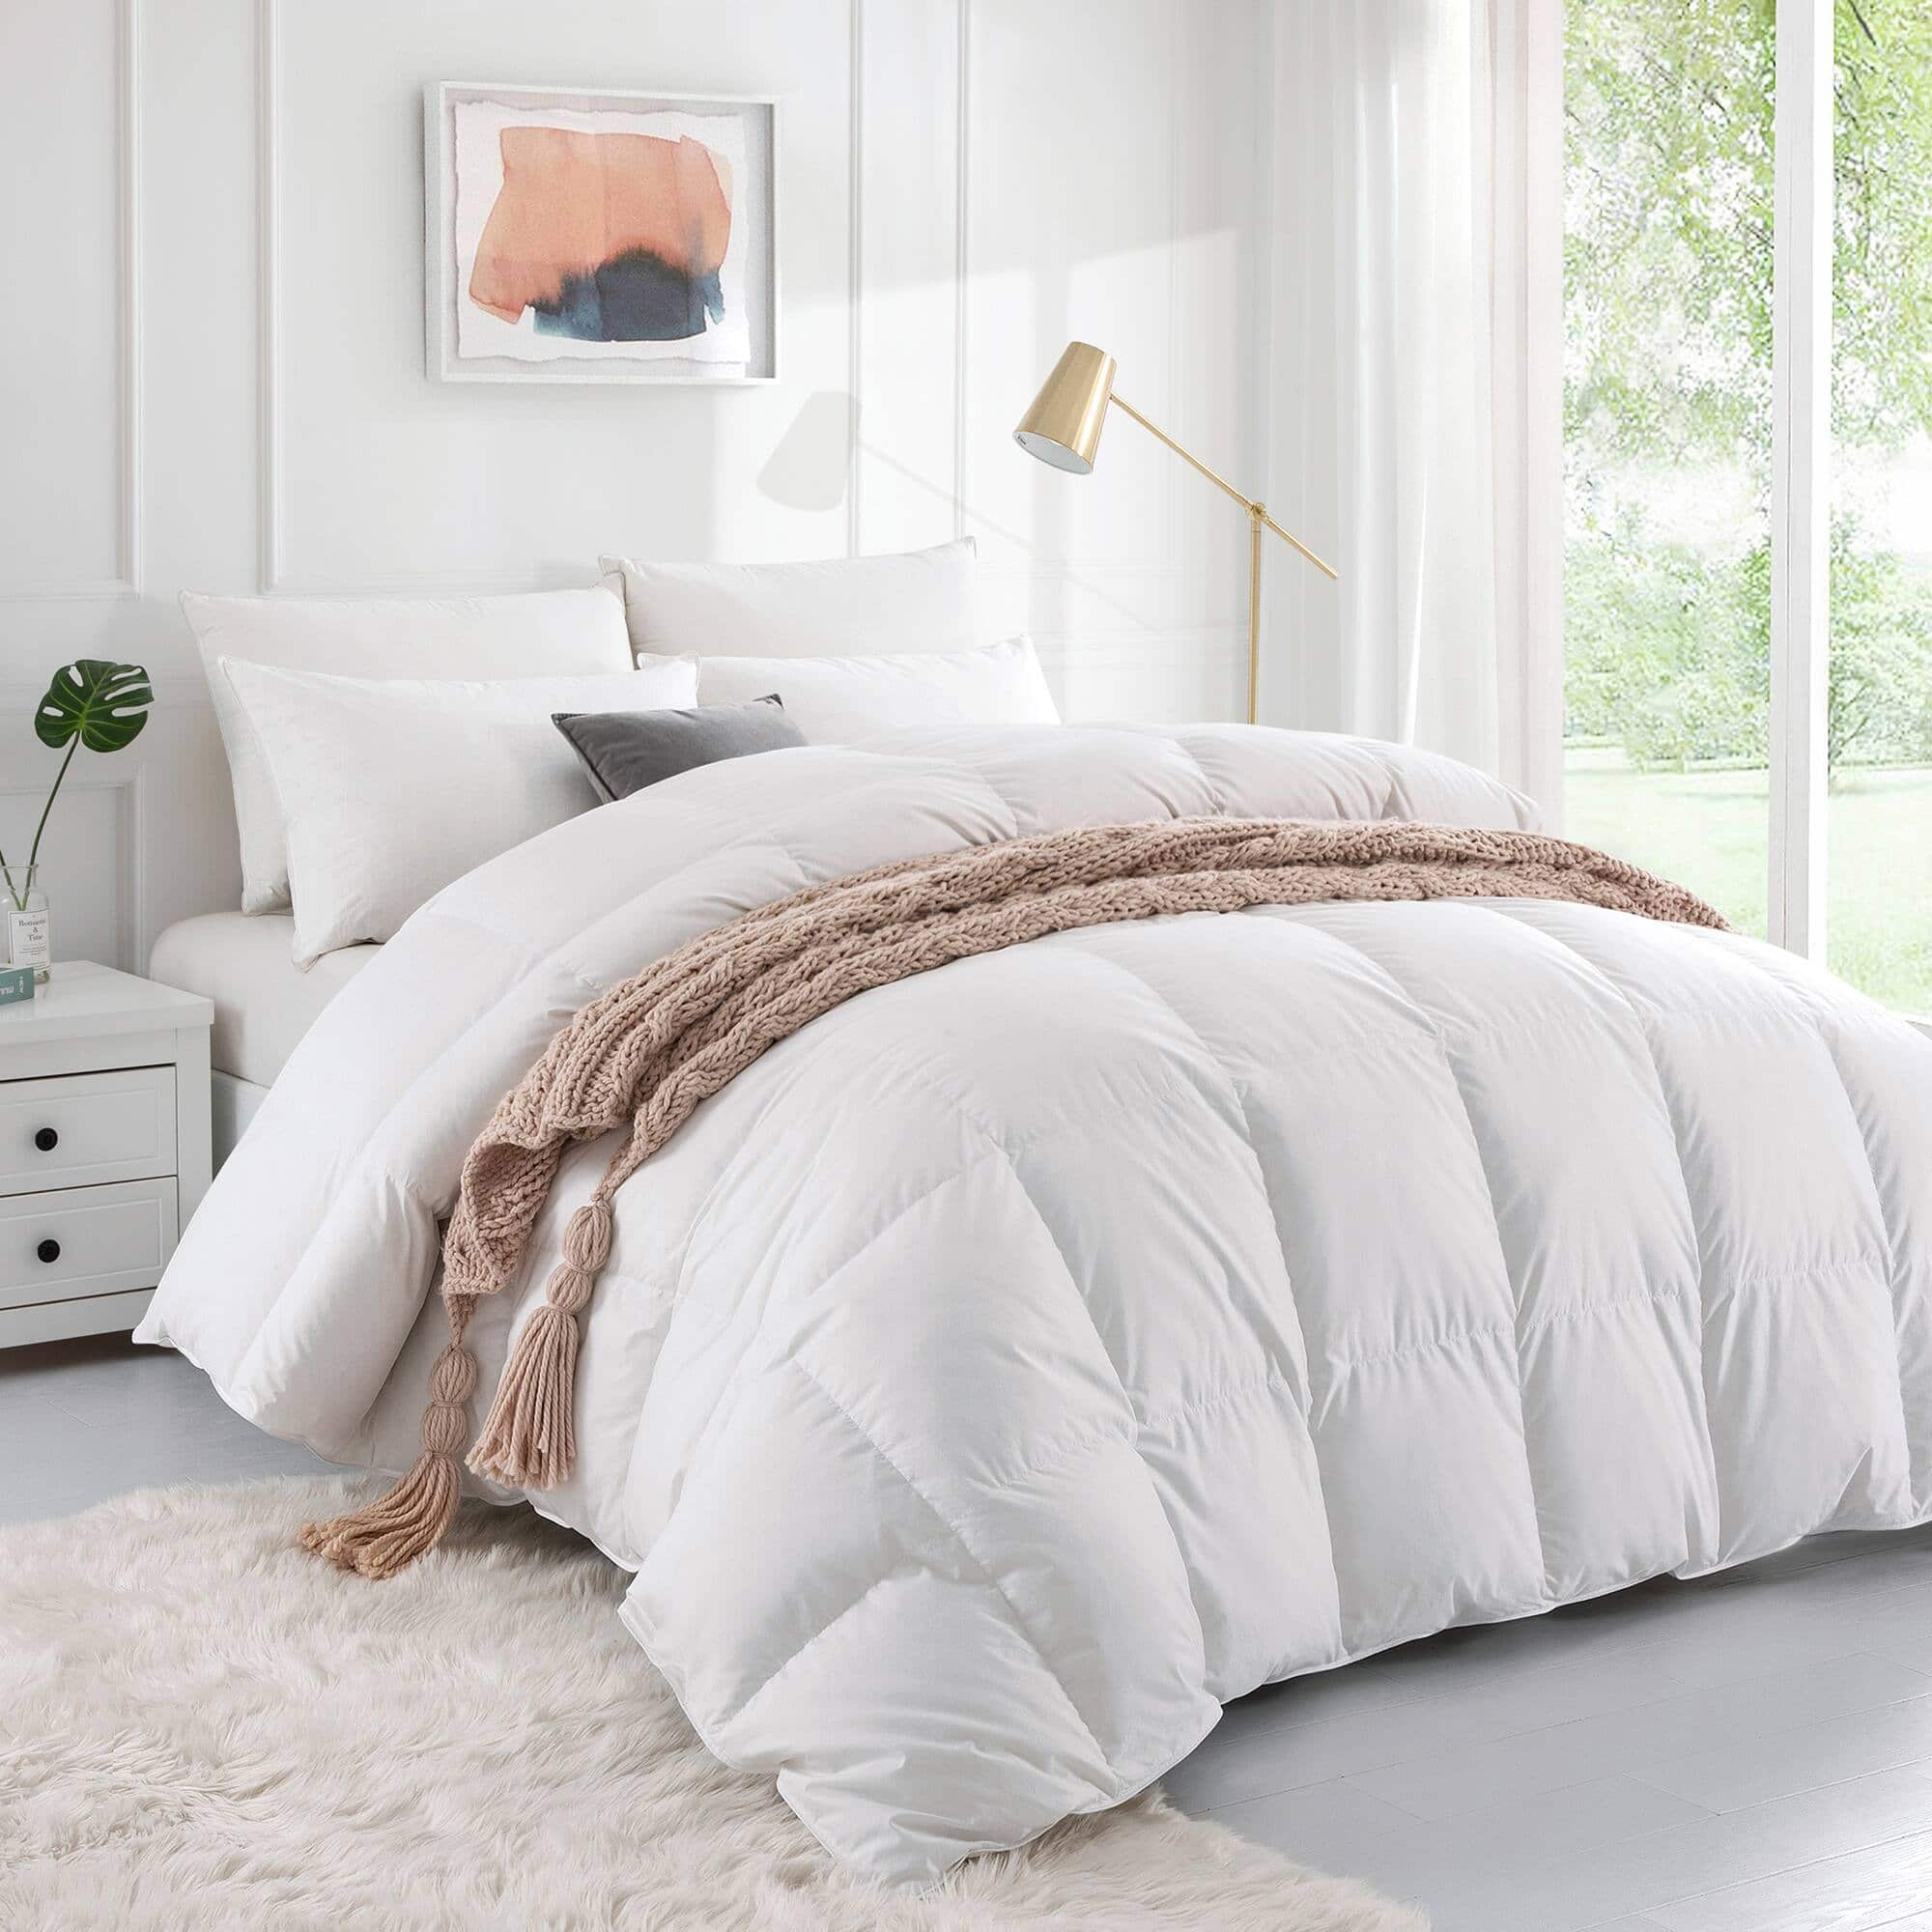 800 Fill Power Down Comforter White Goose Down Comforter 100% Cotton Cover, Twin $159.99, Full/Queen $199.99, King $231.99 + Free Shipping